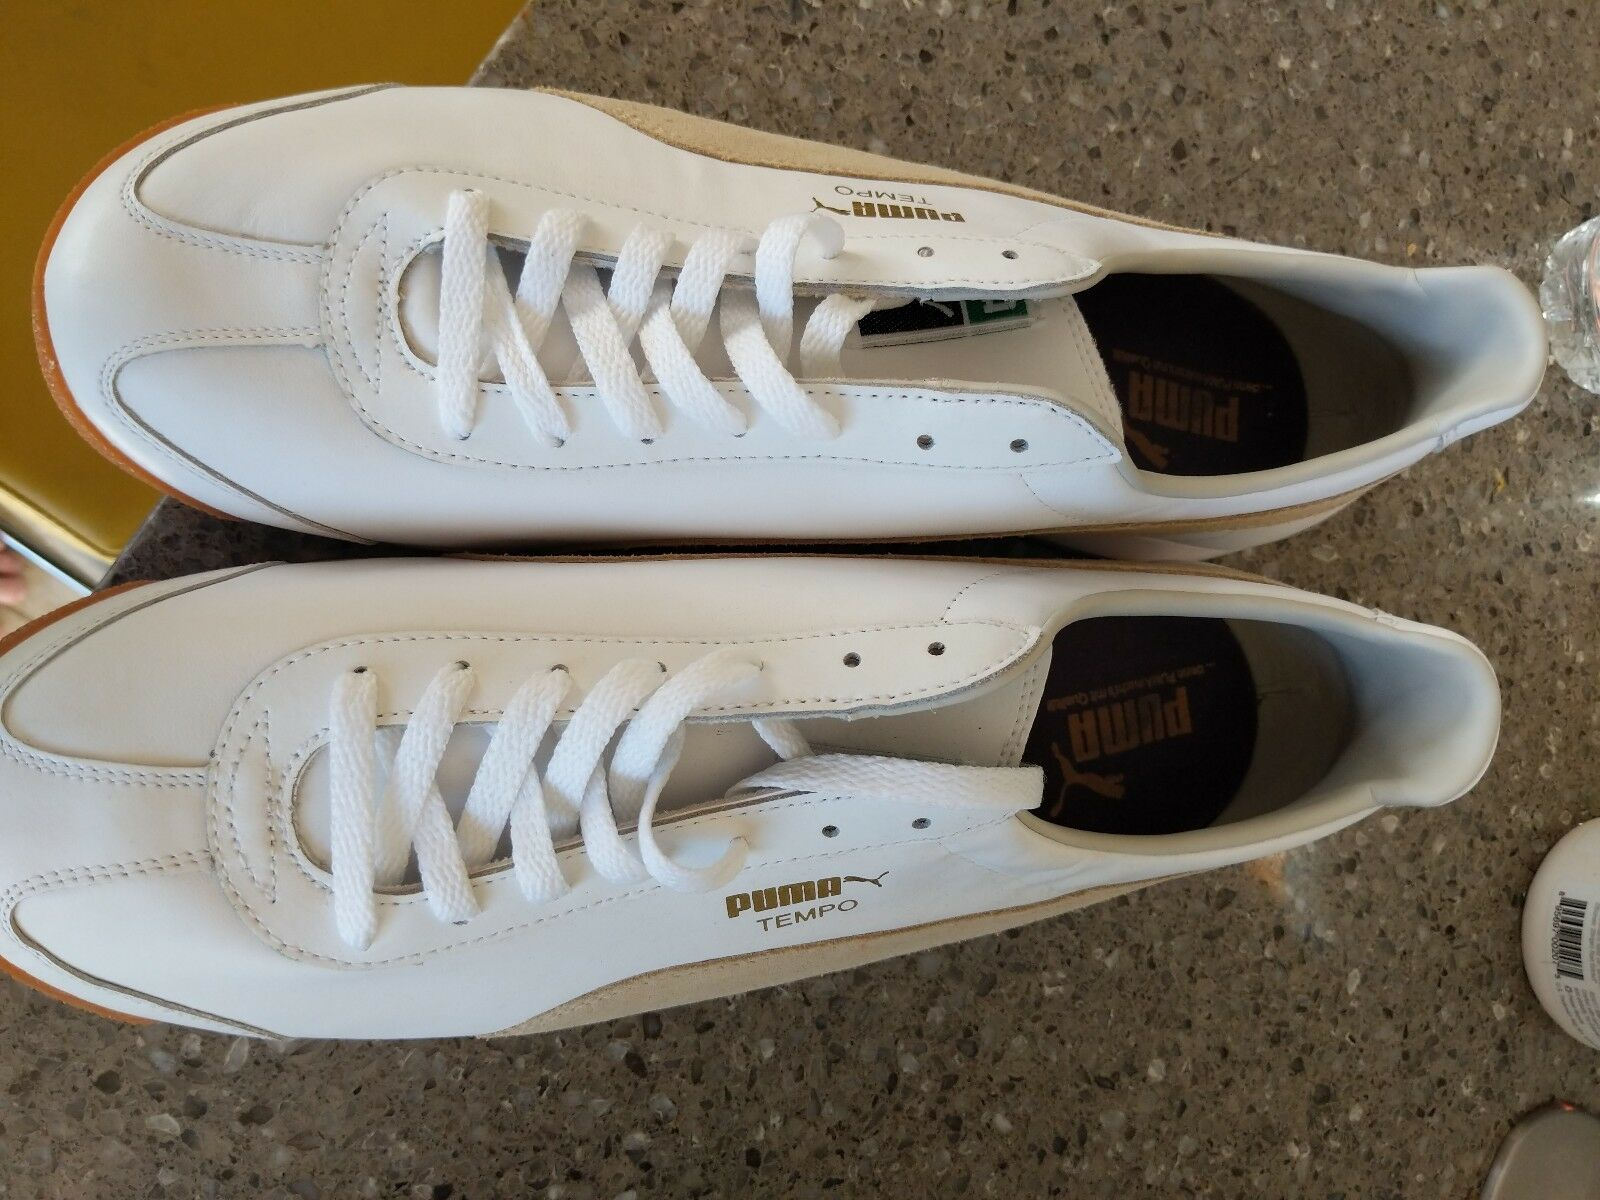 Puma Tempo Shoes  white and tan suede. Clean and unworn